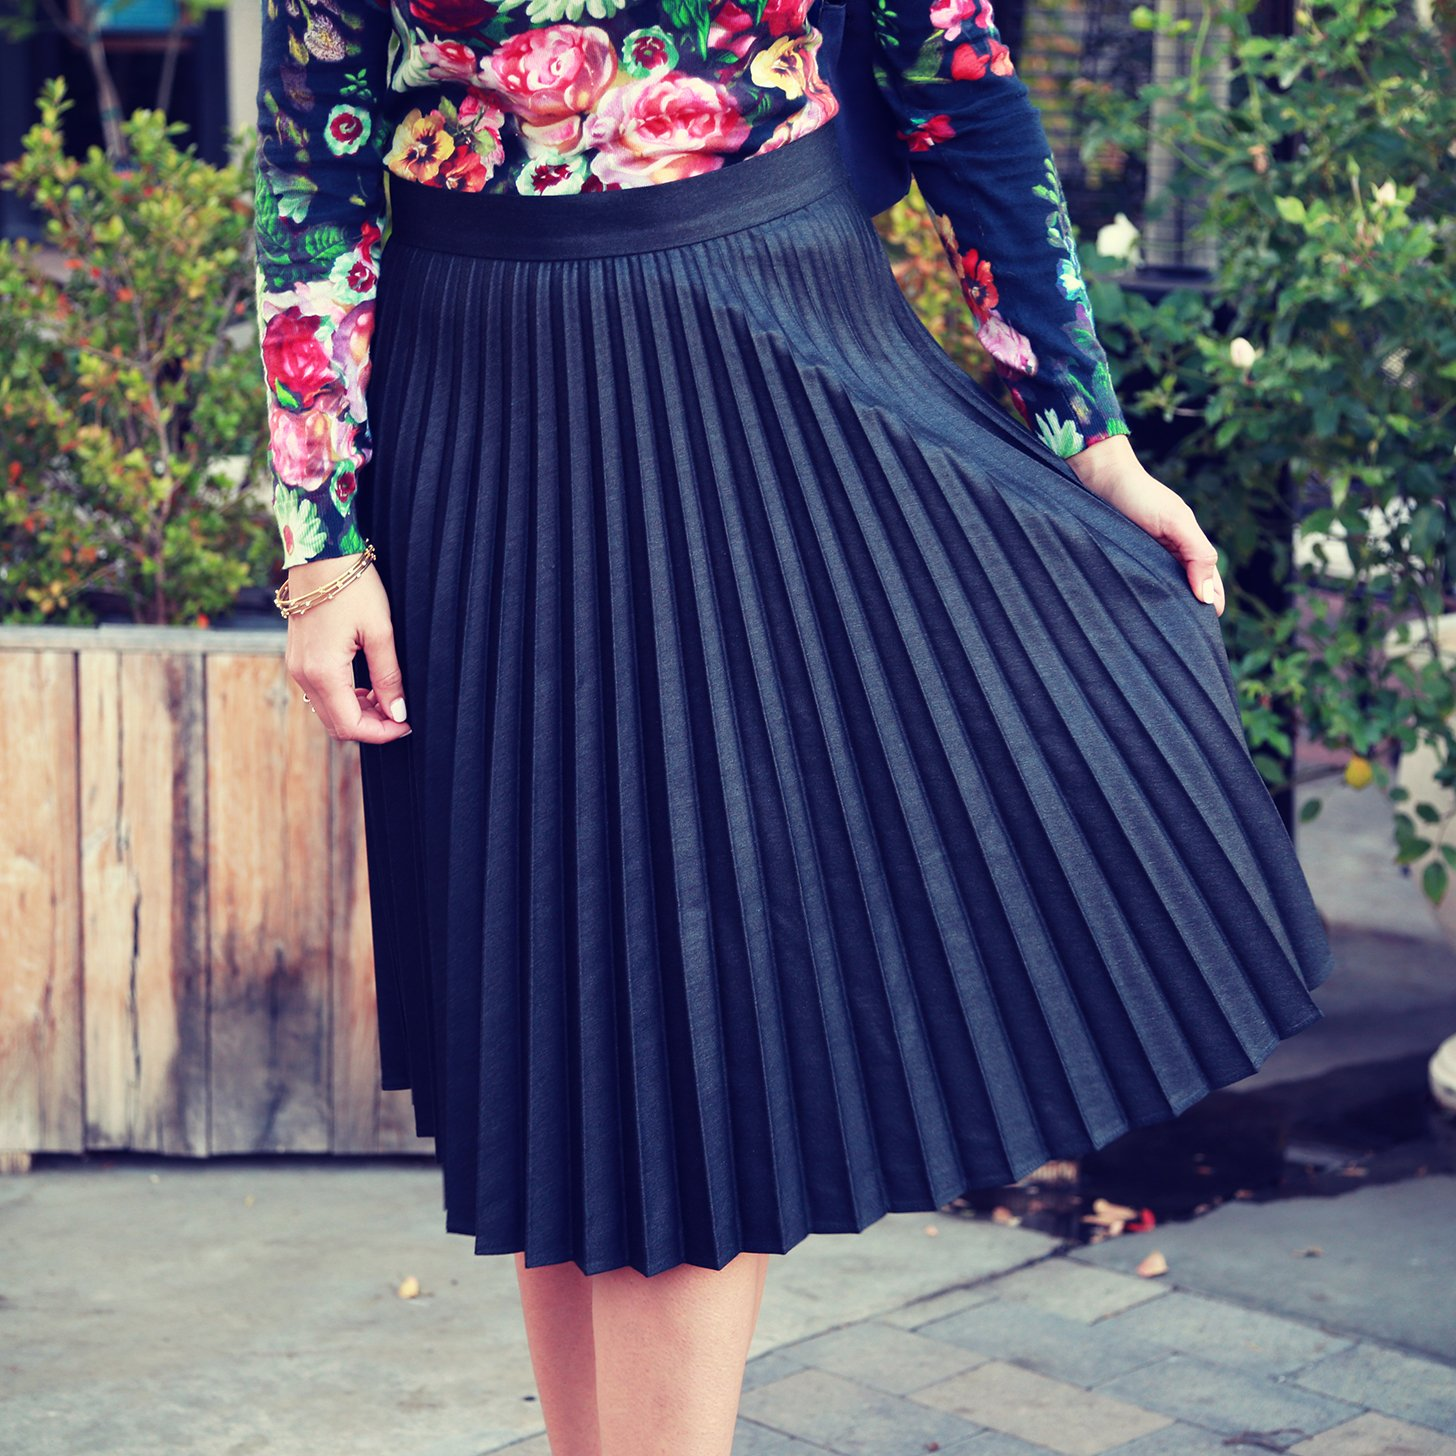 An Overview of Pleated Skirts